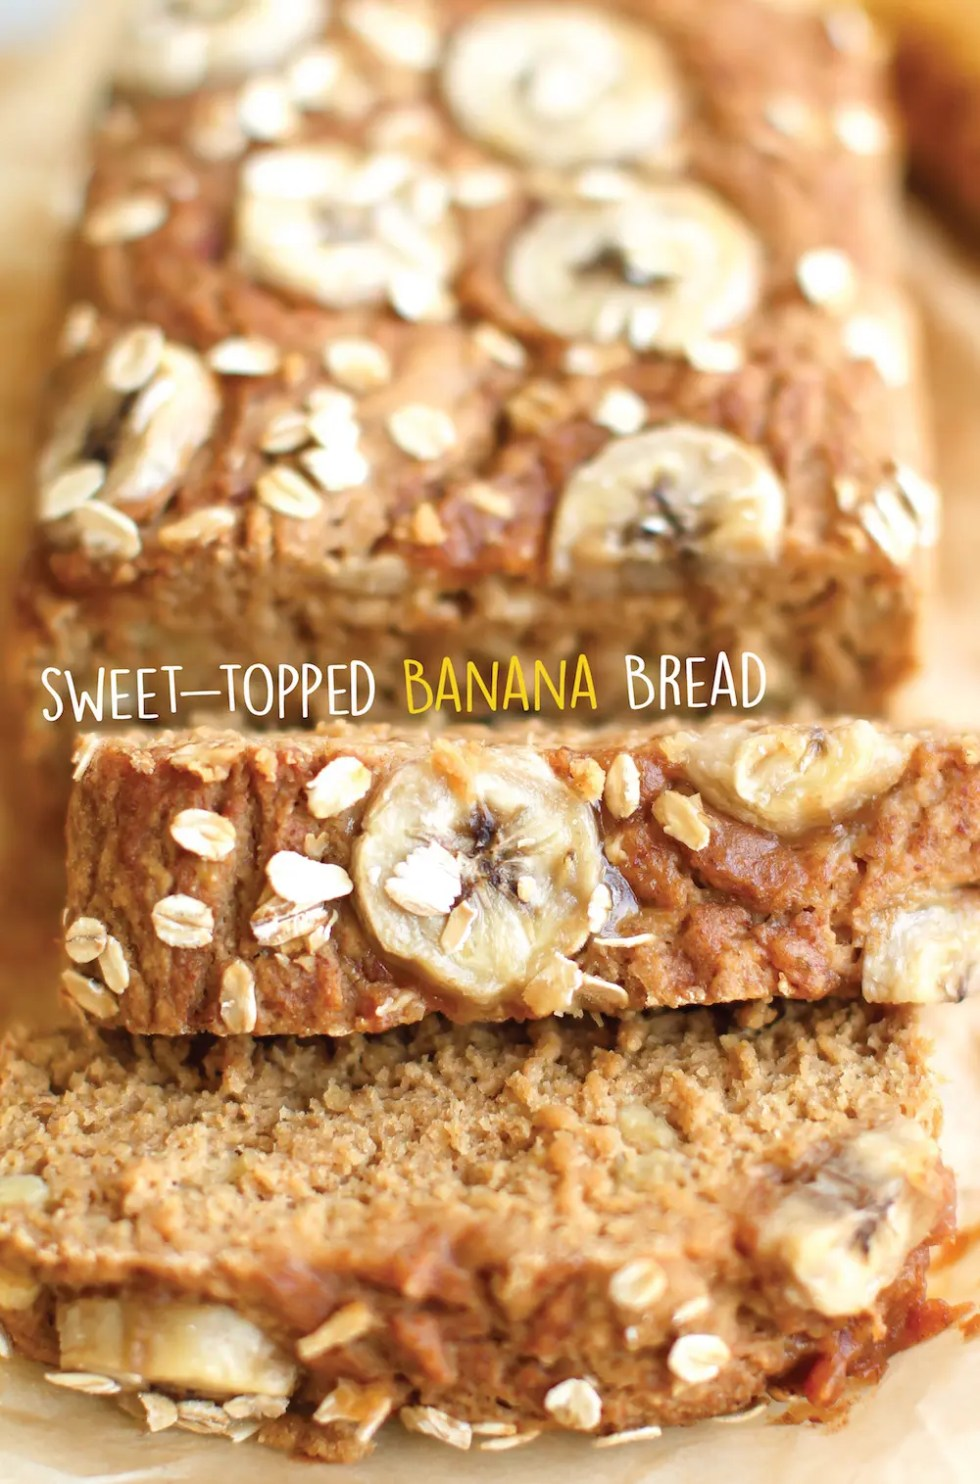 Oat flour banana bread with just a few simple ingredients and an extra-sweet cinnamon date topping! Oil-free and coconut sugar sweetened.